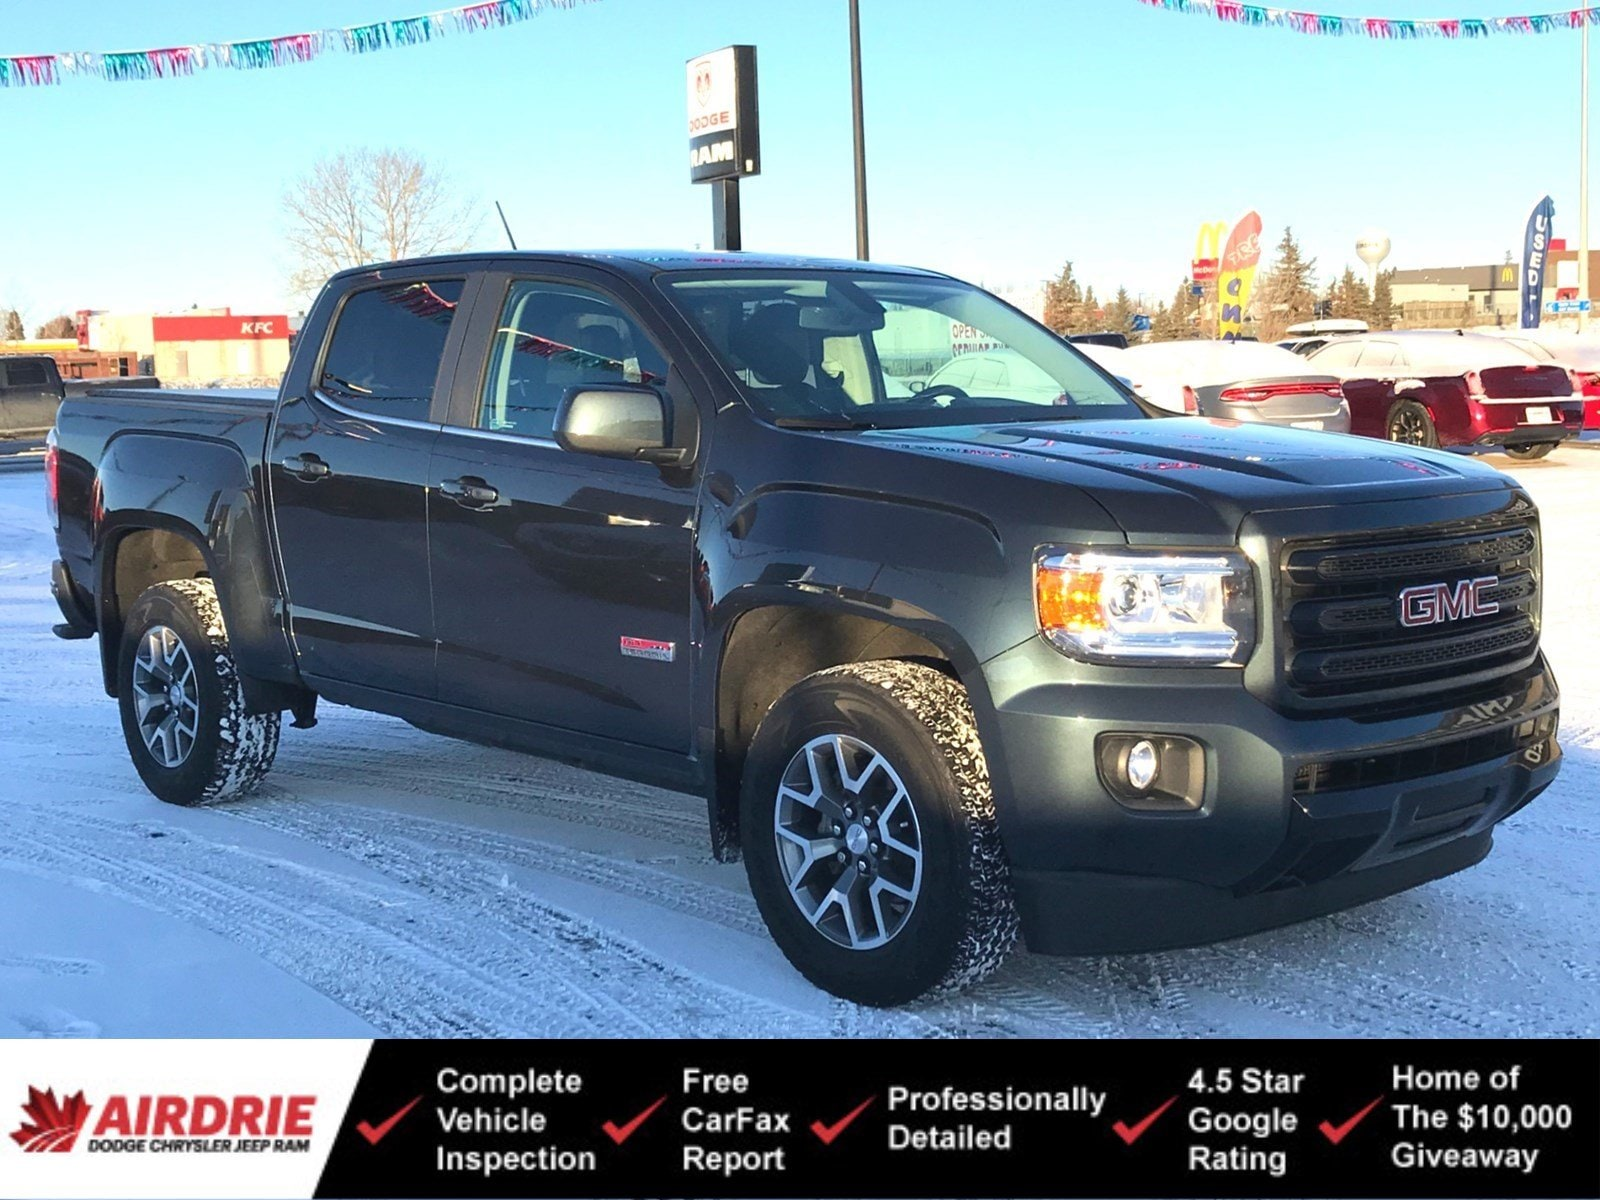 2018 GMC Canyon All-Terrain 4x4 - Leather! New Tires! 4WD Crew Cab 140.5 All Terrain w/Leather